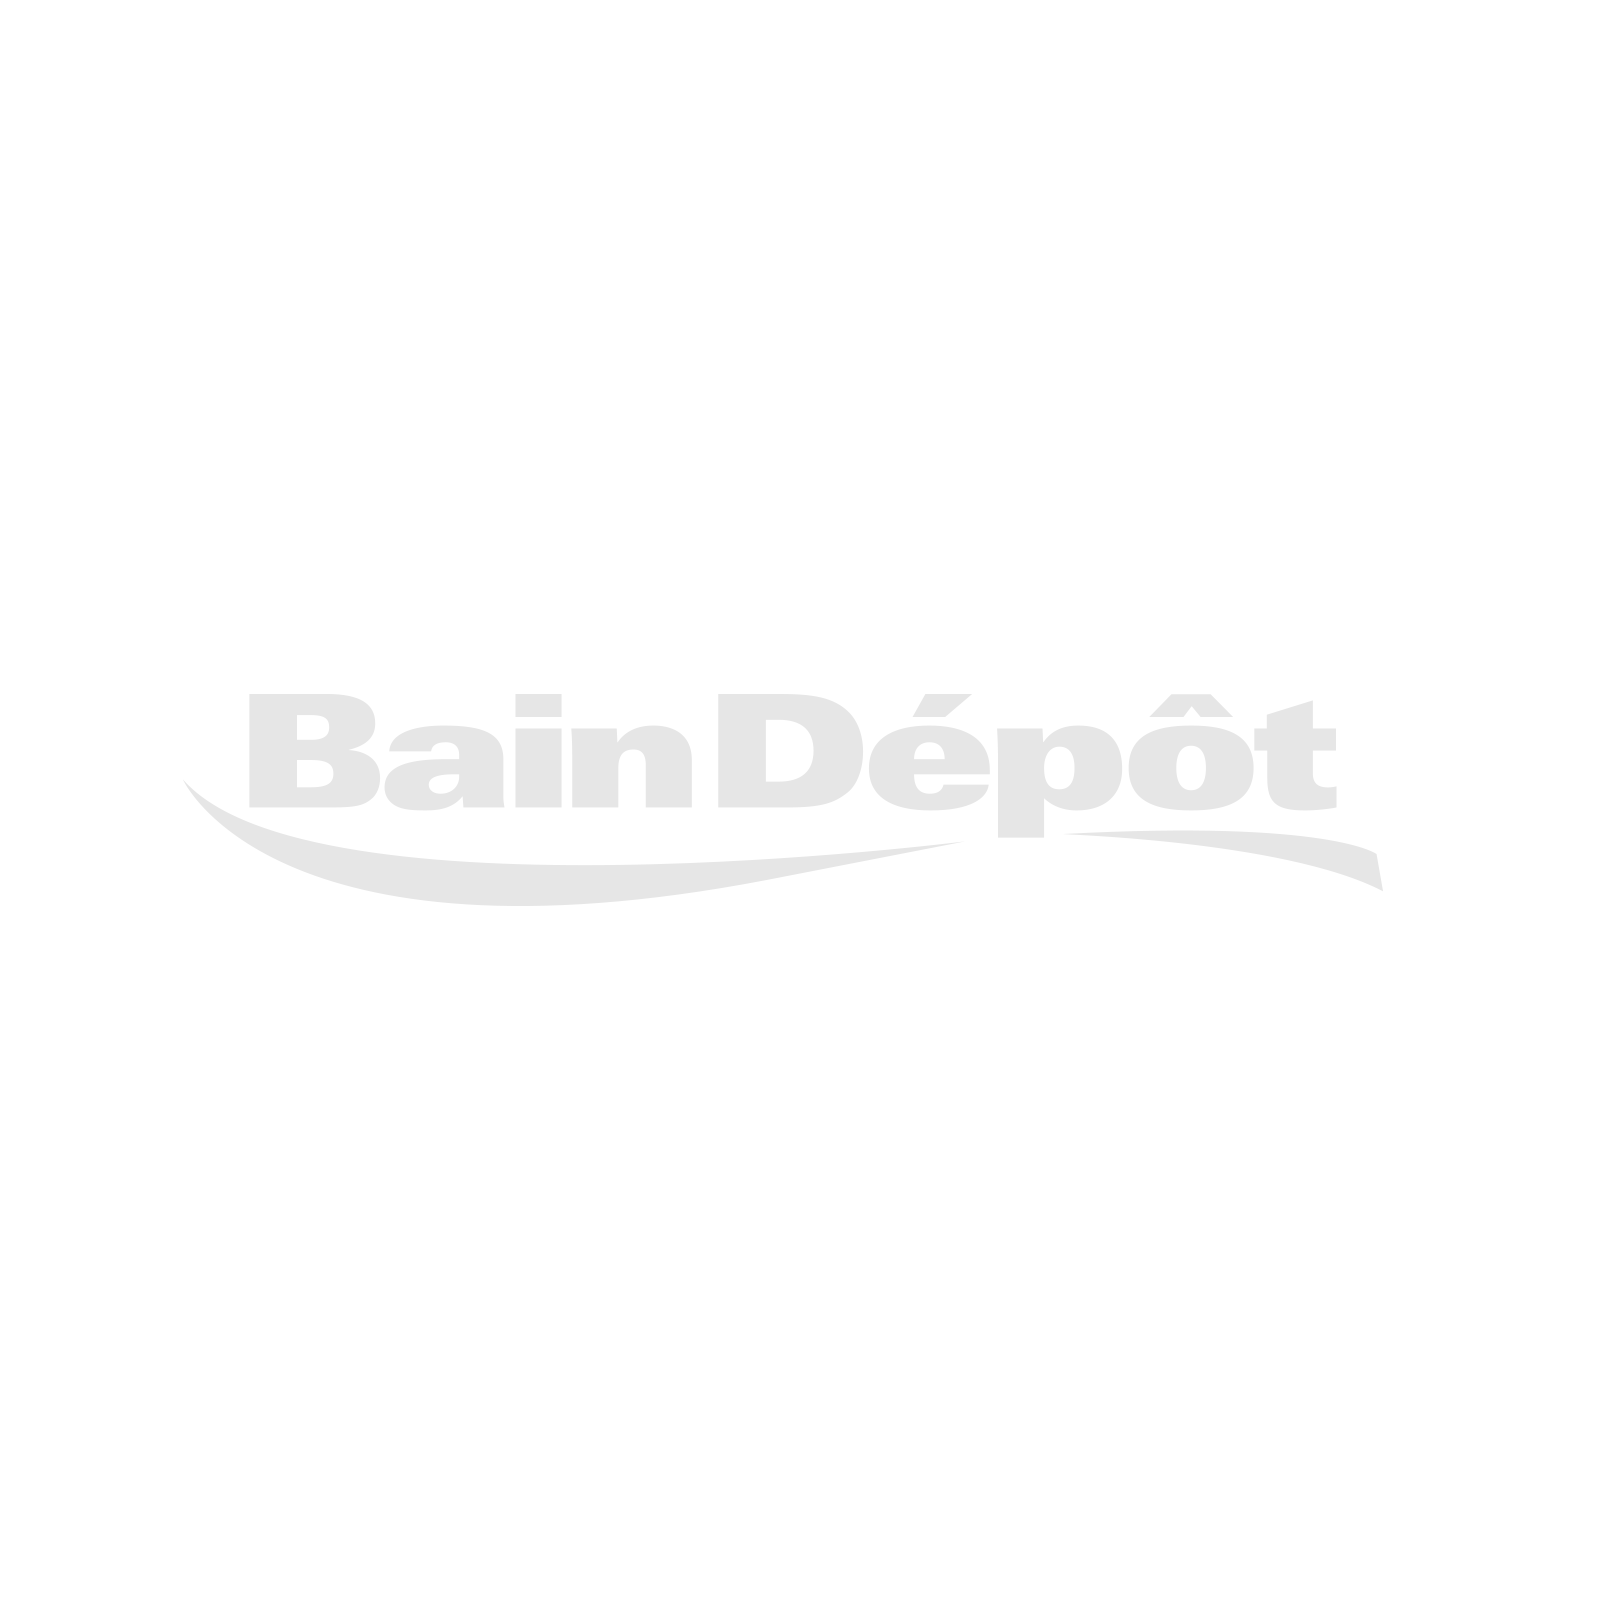 Chrome wall-mount bathroom sink faucet with single handle